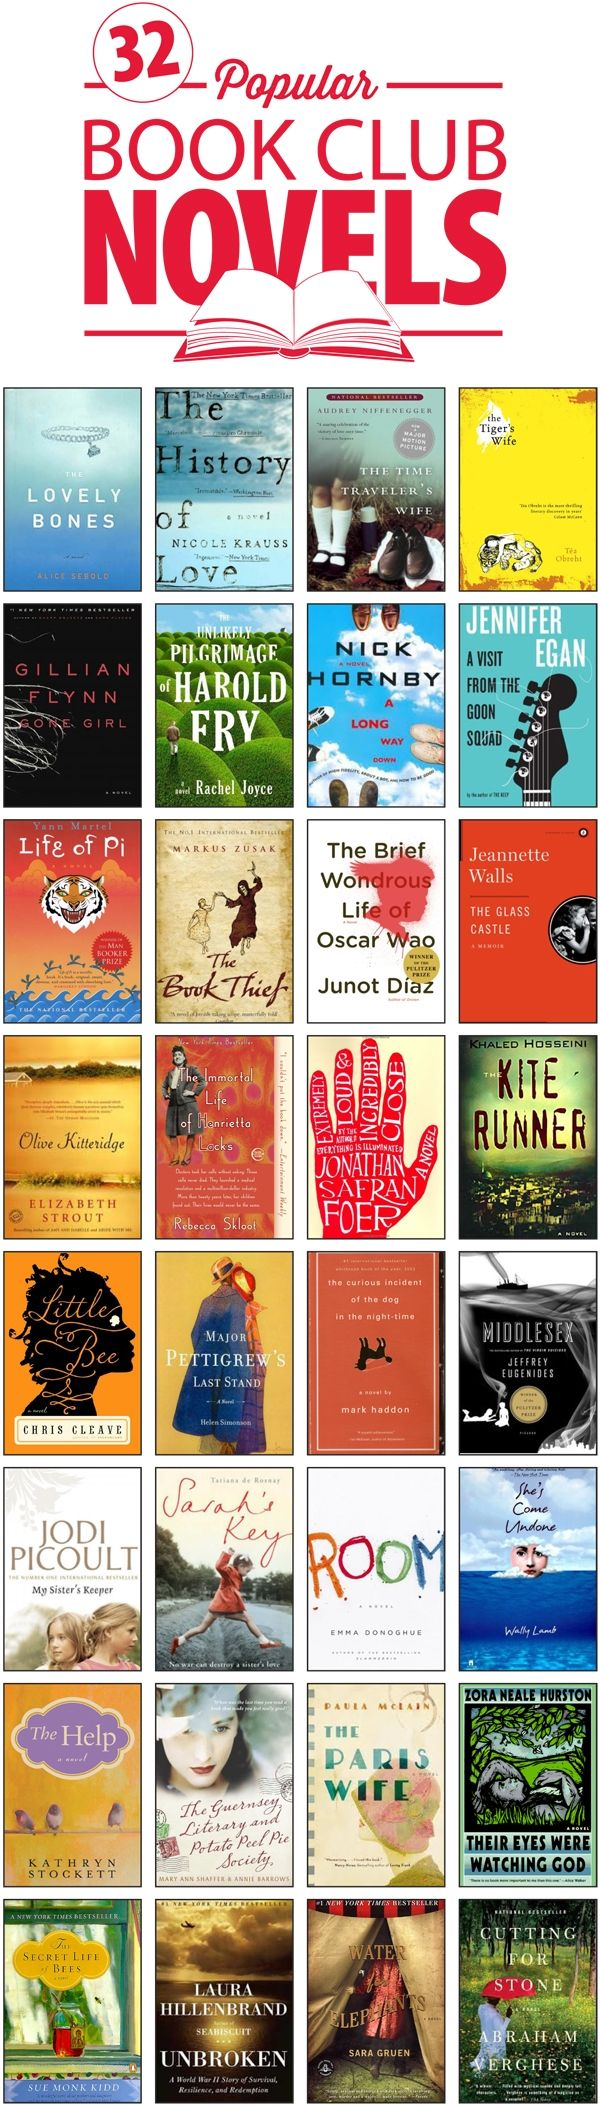 Top 32 Popular Fiction Books...already read 11 of the 32!